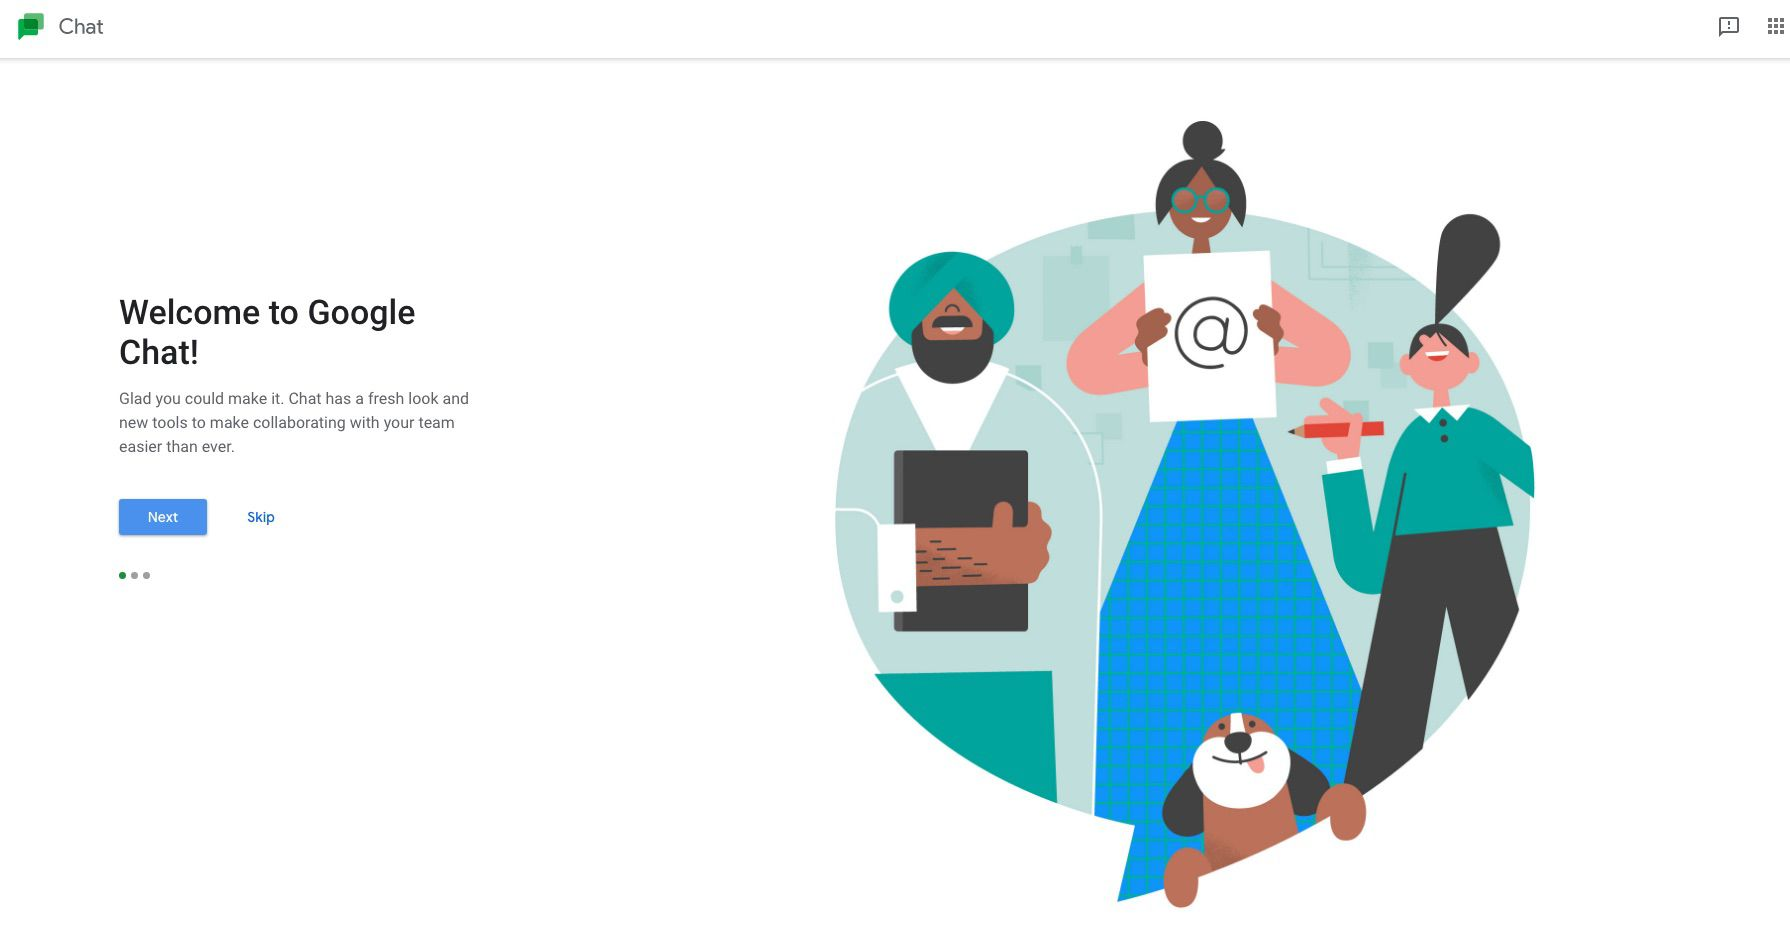 Google Chat welcome page